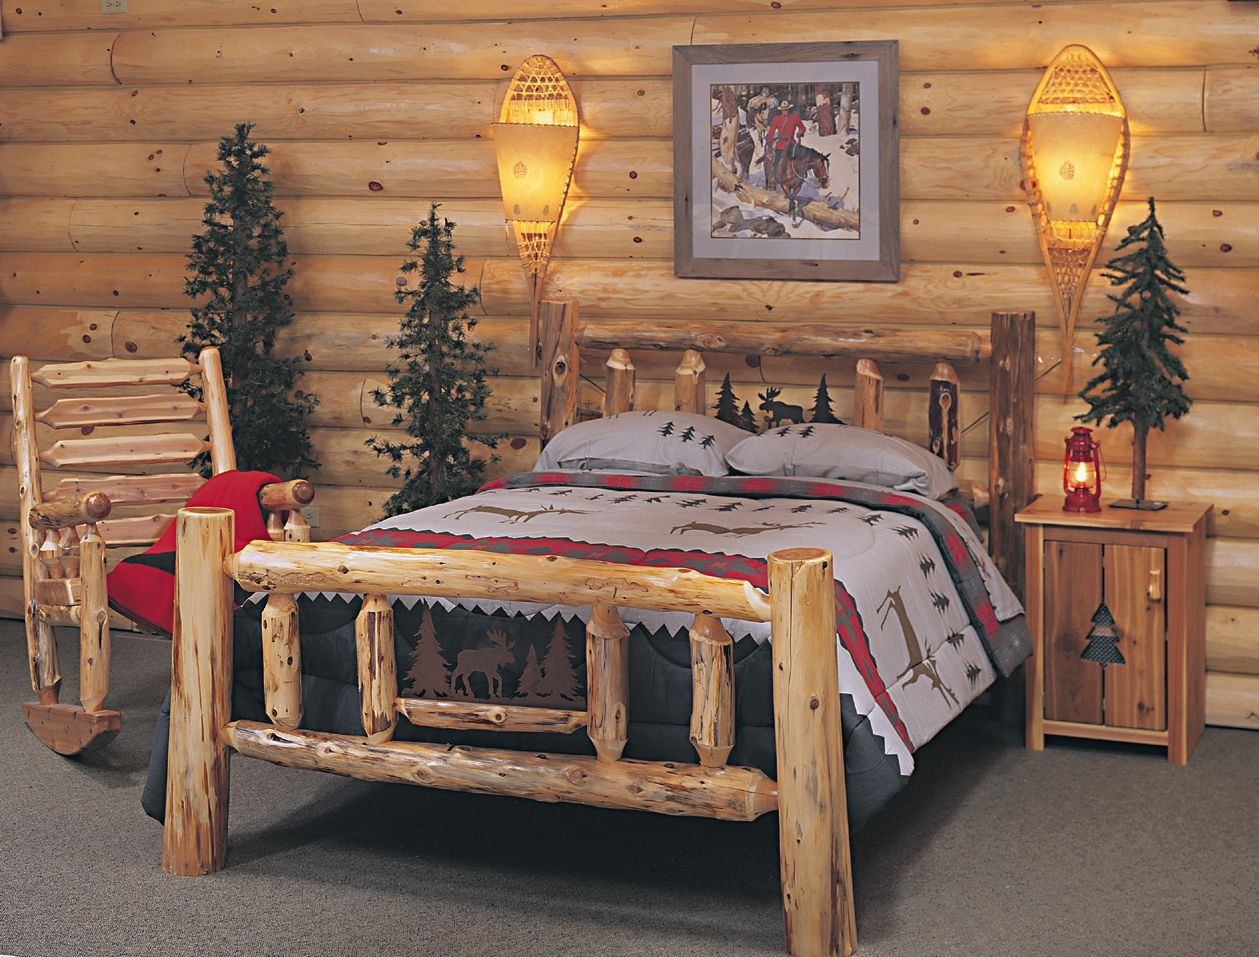 29 Unique Rustic Style Decor Plans To Plement A New Cabin Log Bed Kitchen Home